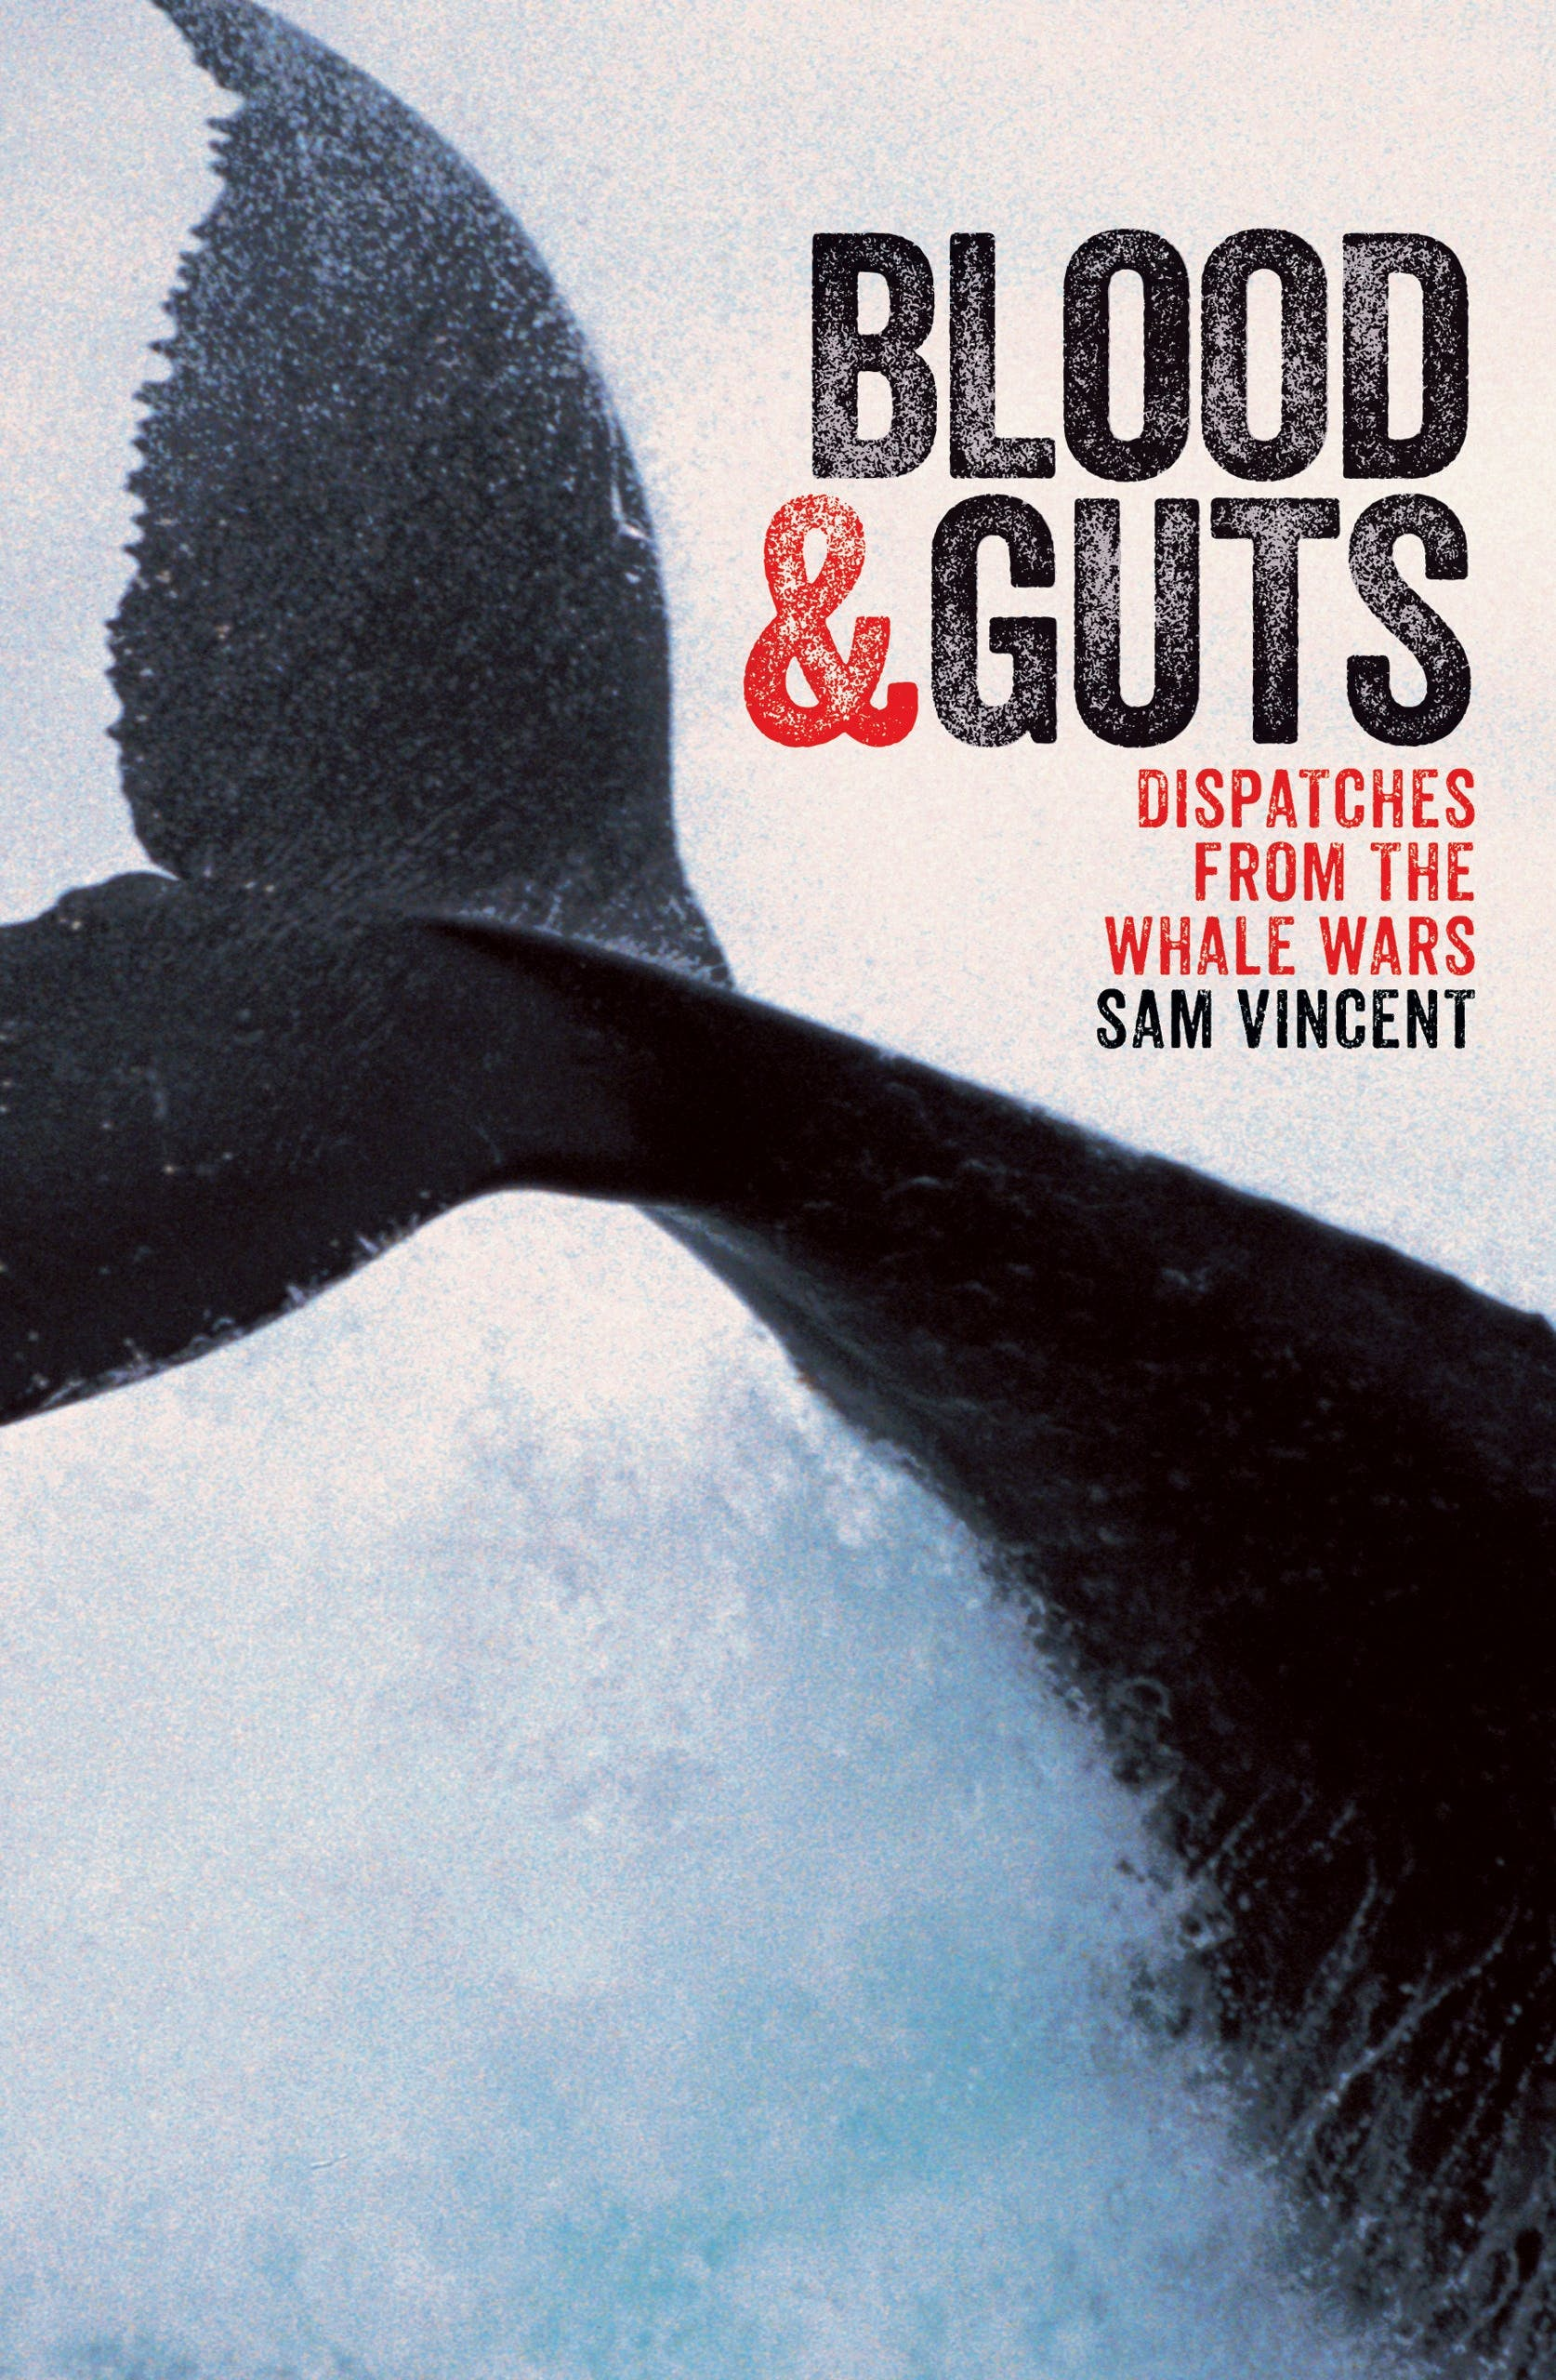 Blood And Guts Dispatches From The Whale Wars